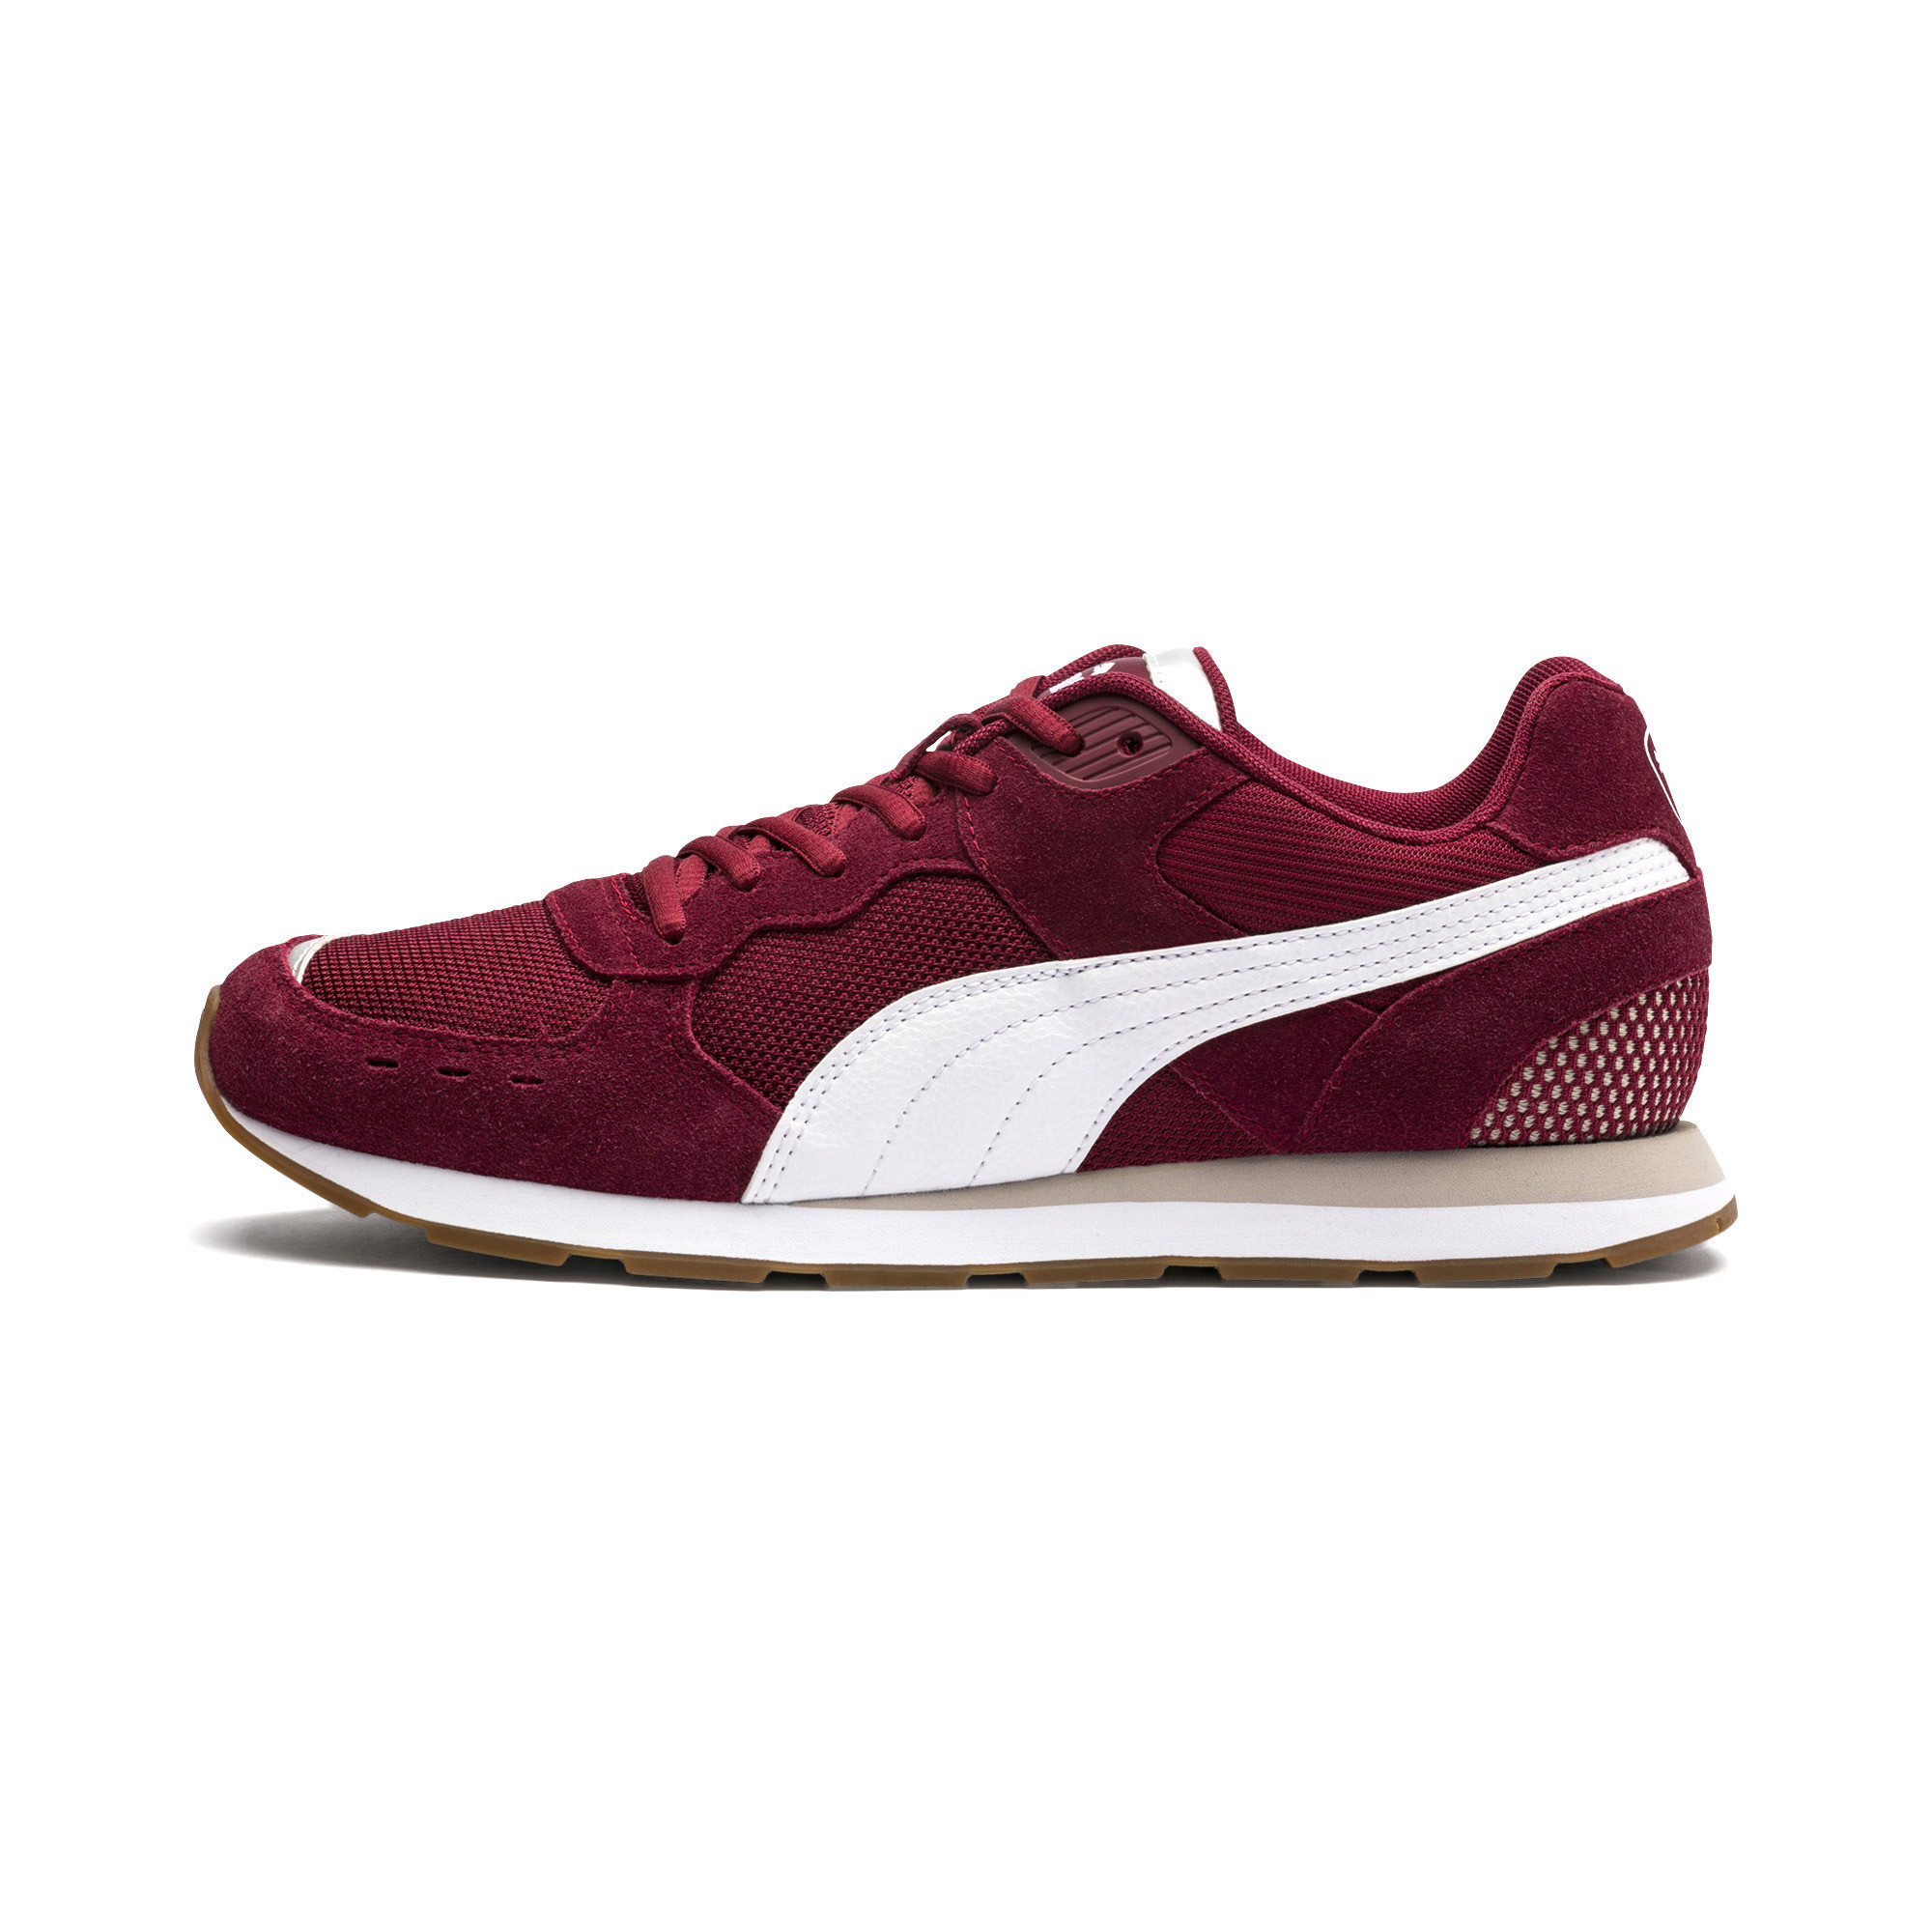 PUMA-Men-039-s-Vista-Sneakers thumbnail 14